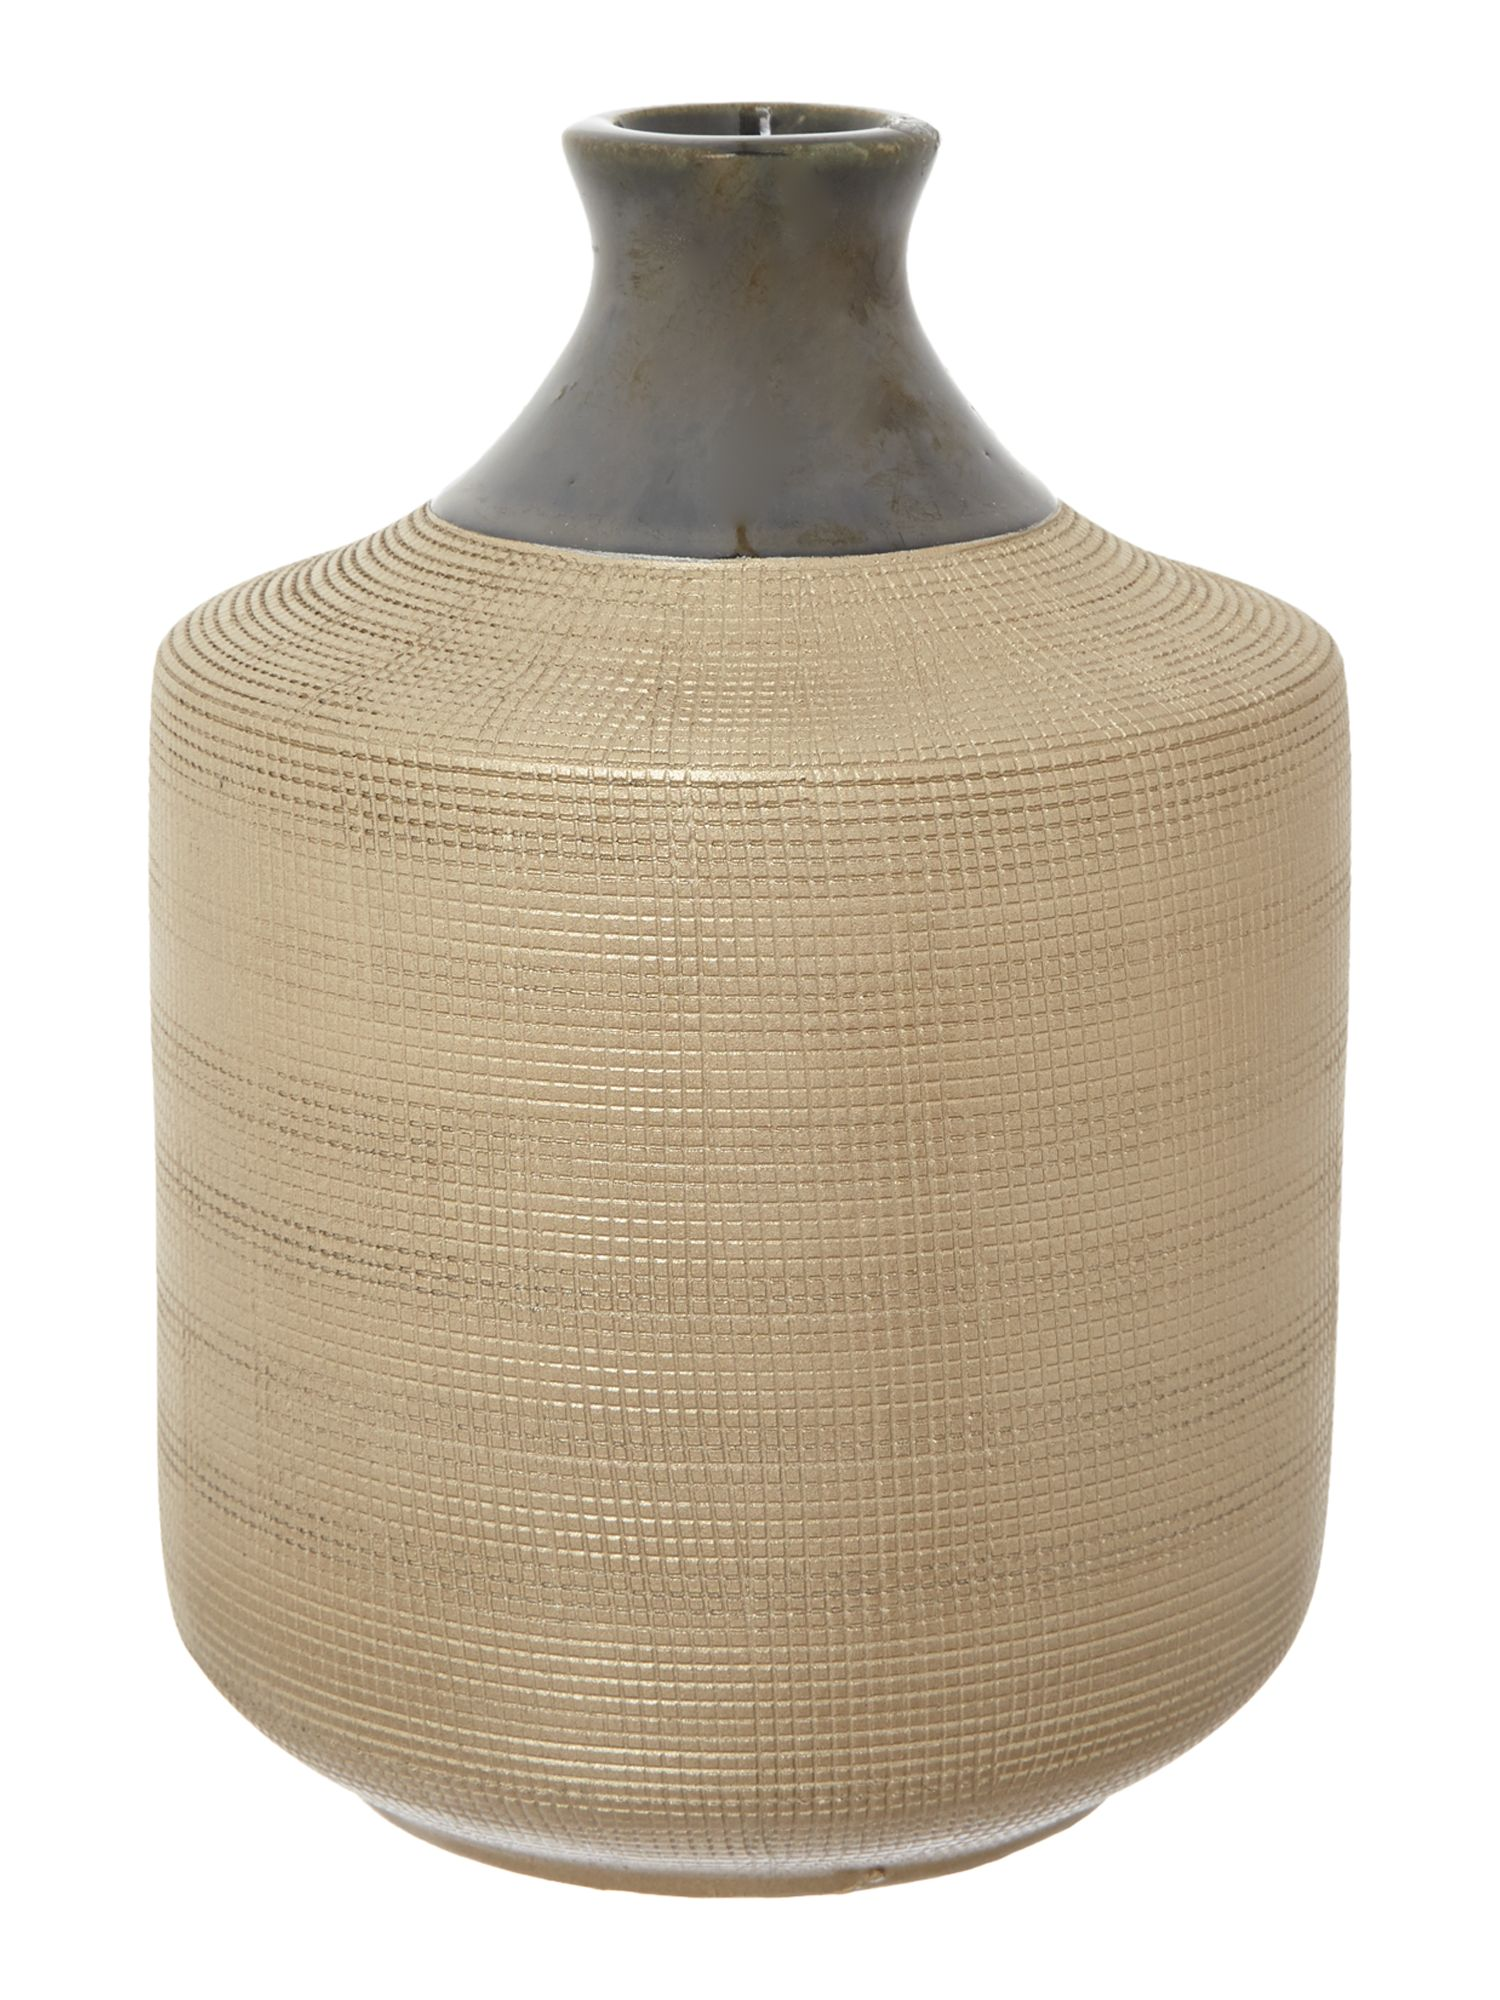 Bronze ceramic vase, small